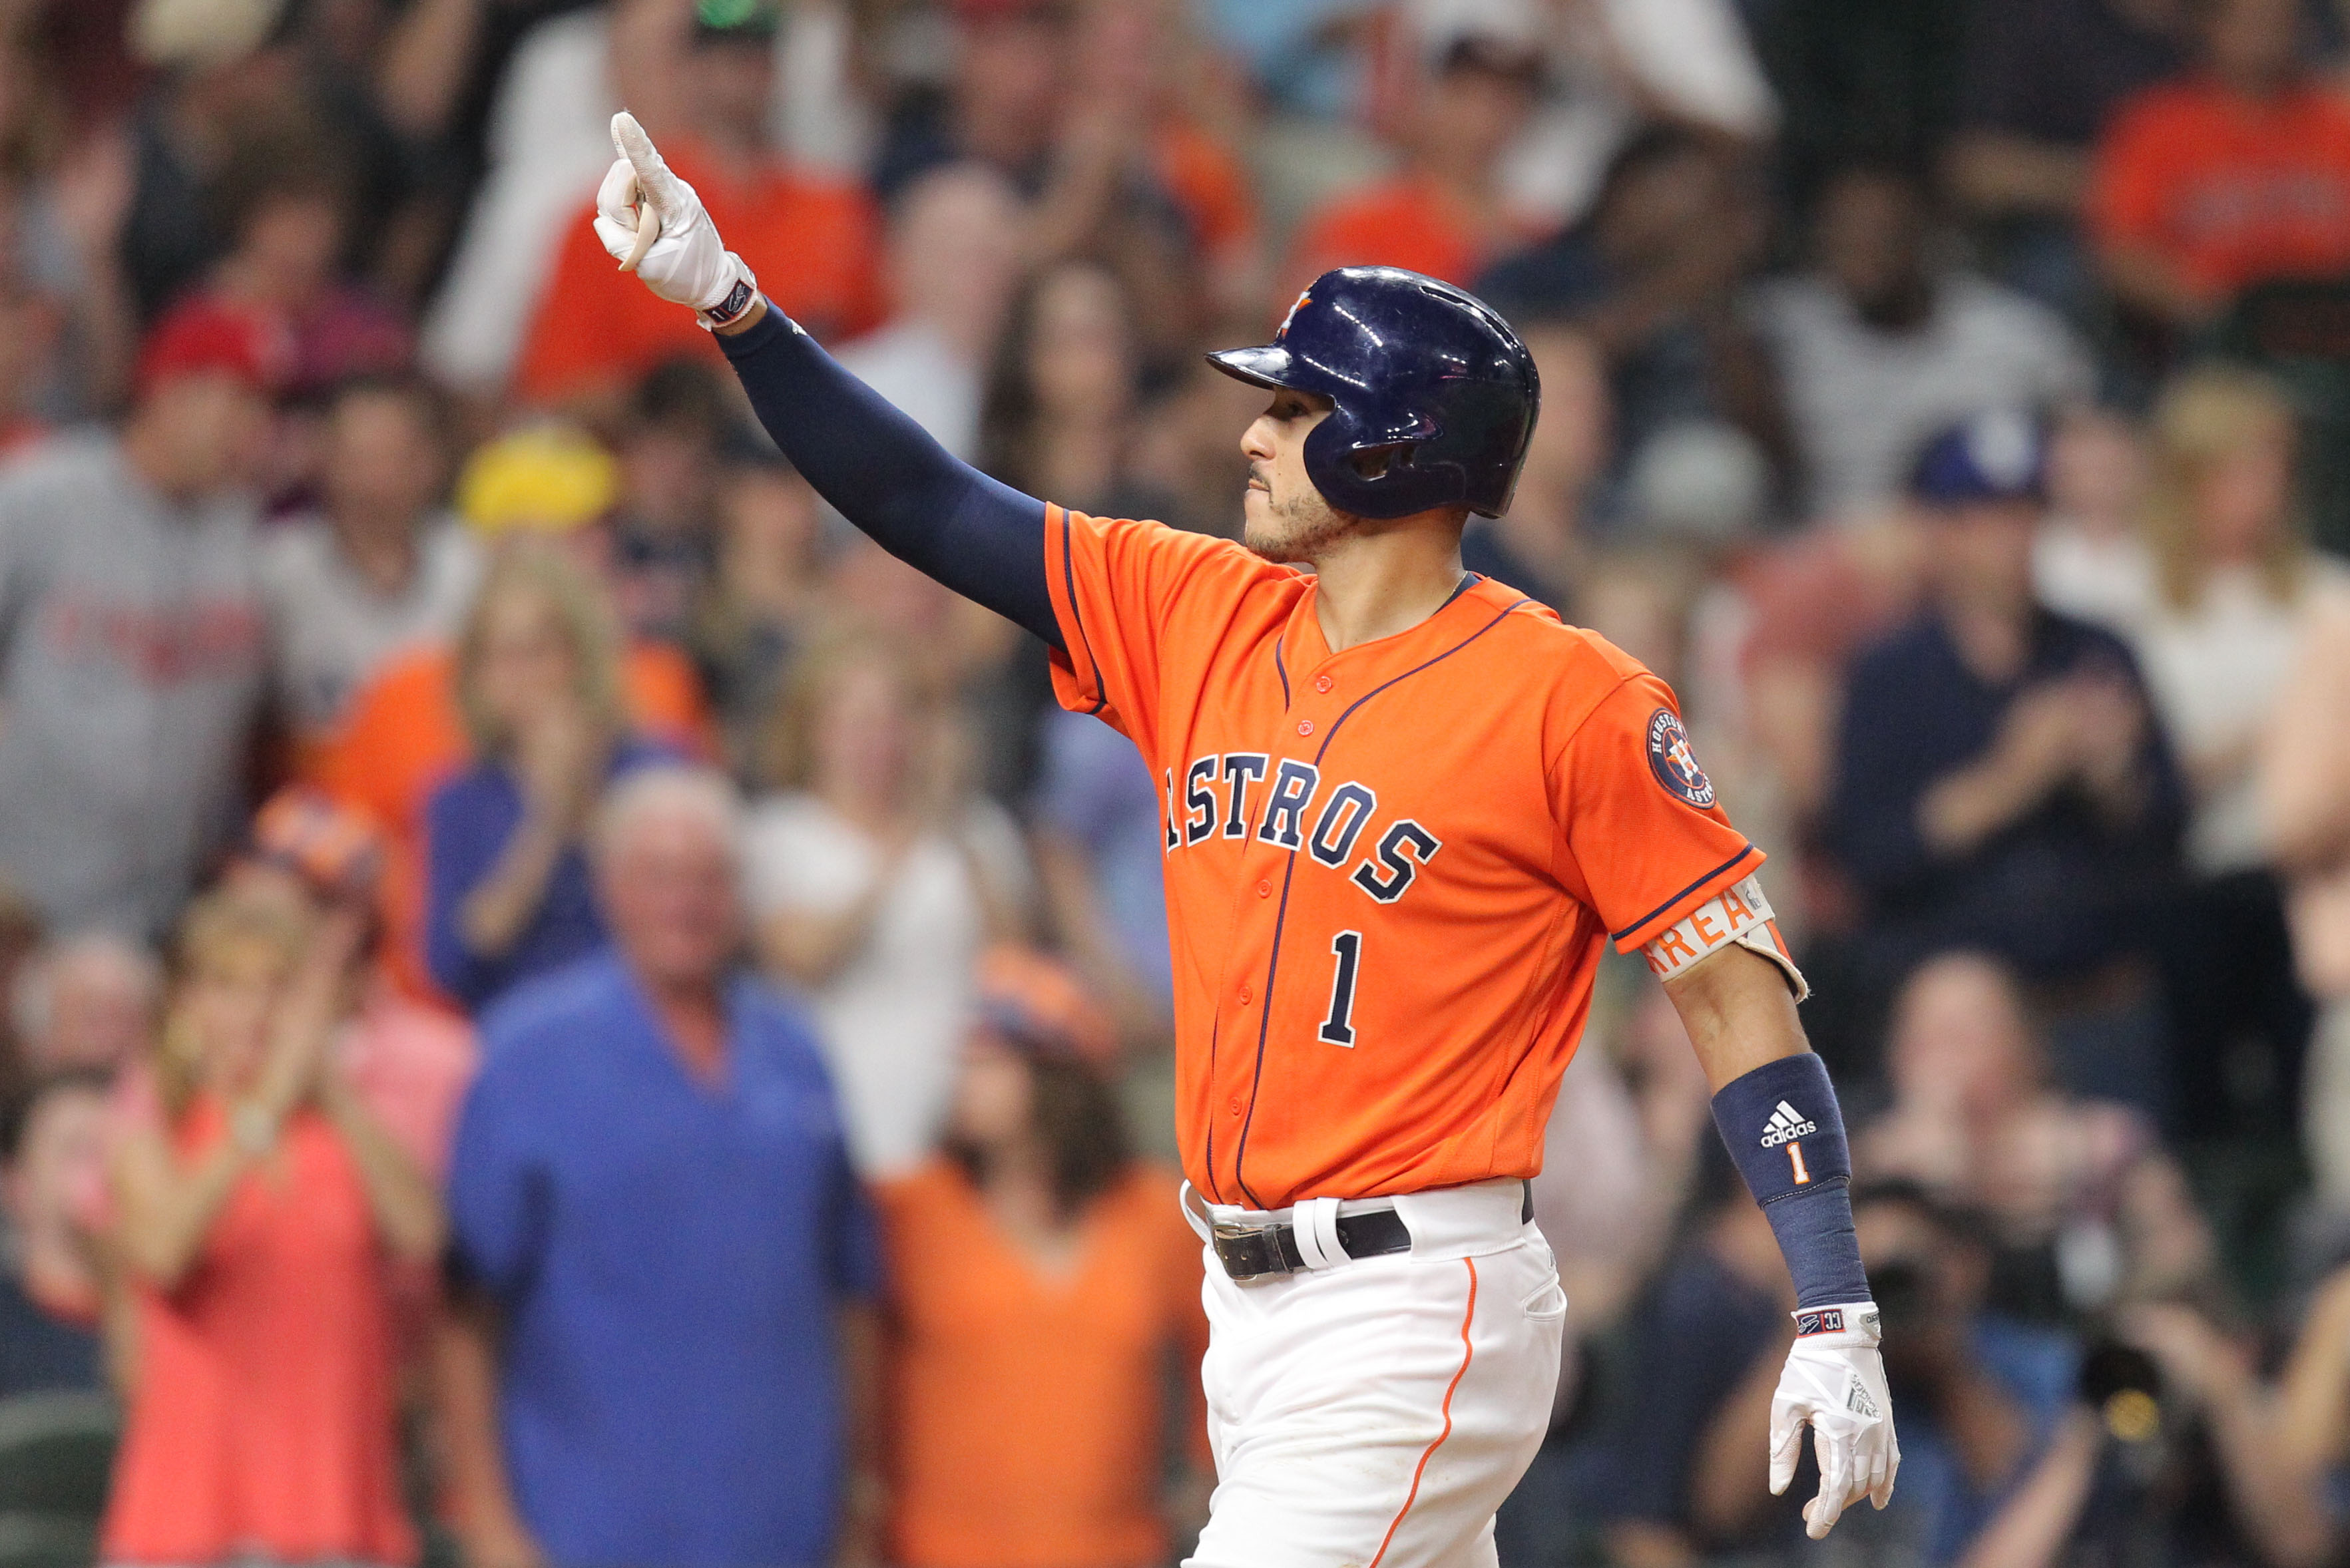 Houston Astros: Carlos Correa and Lance McCullers Jr. honored